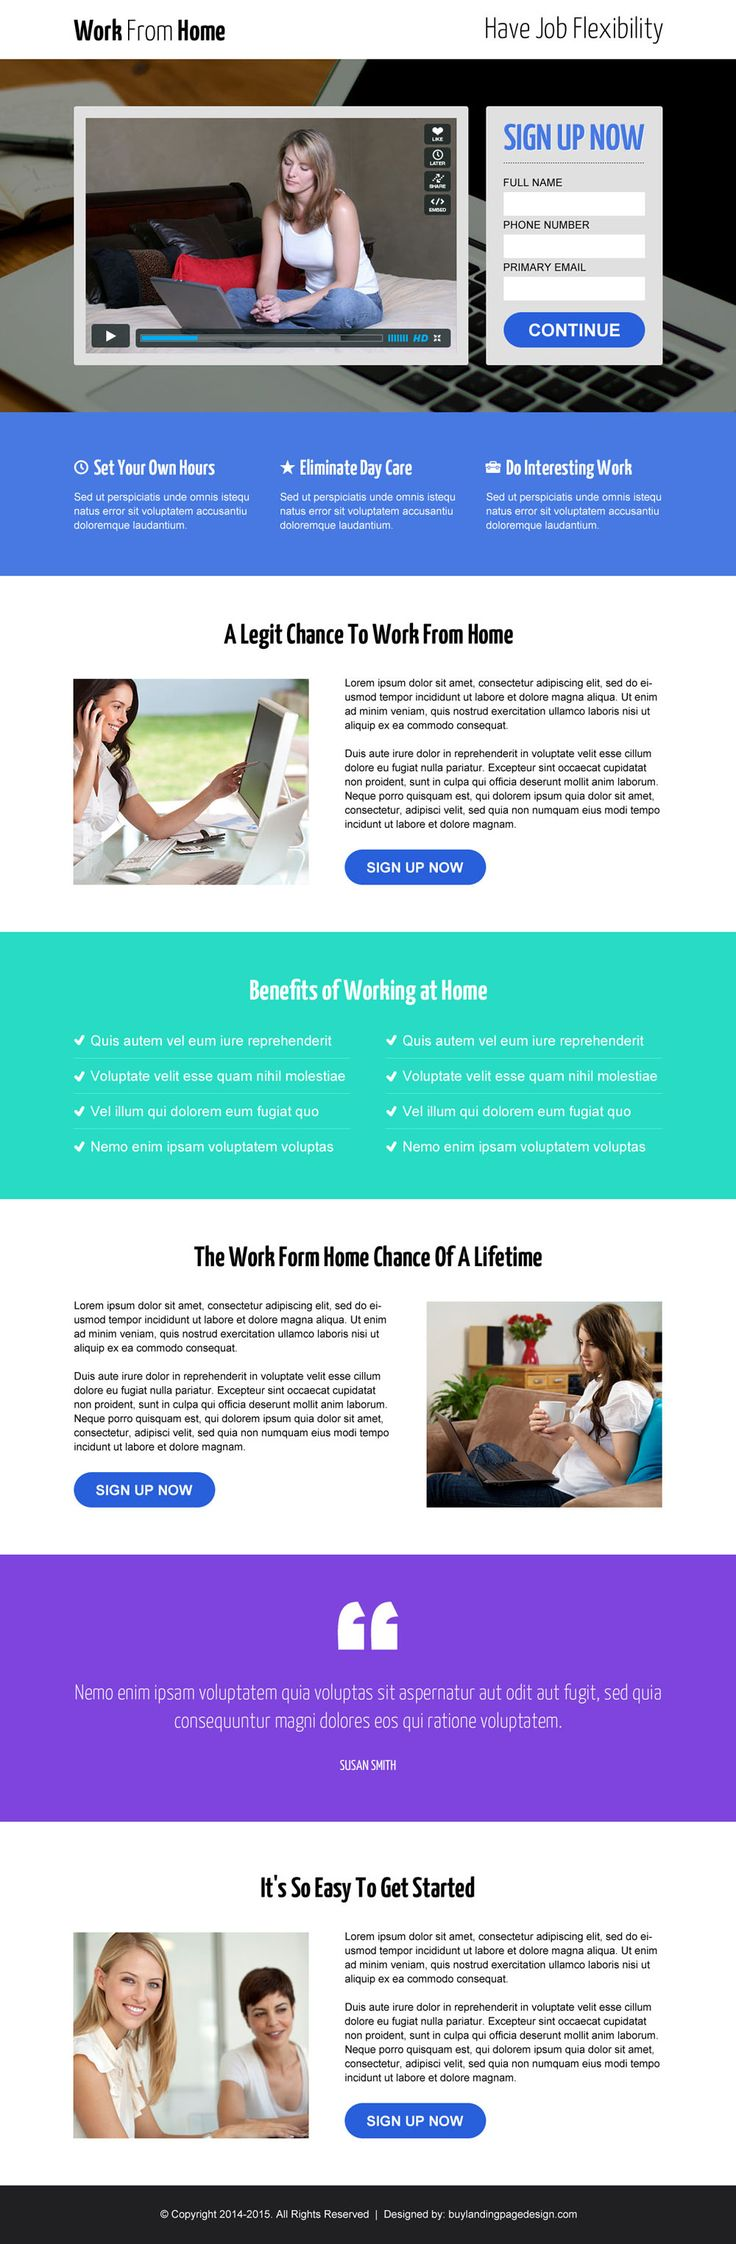 69 best work from home landing page images on Pinterest | Design ...